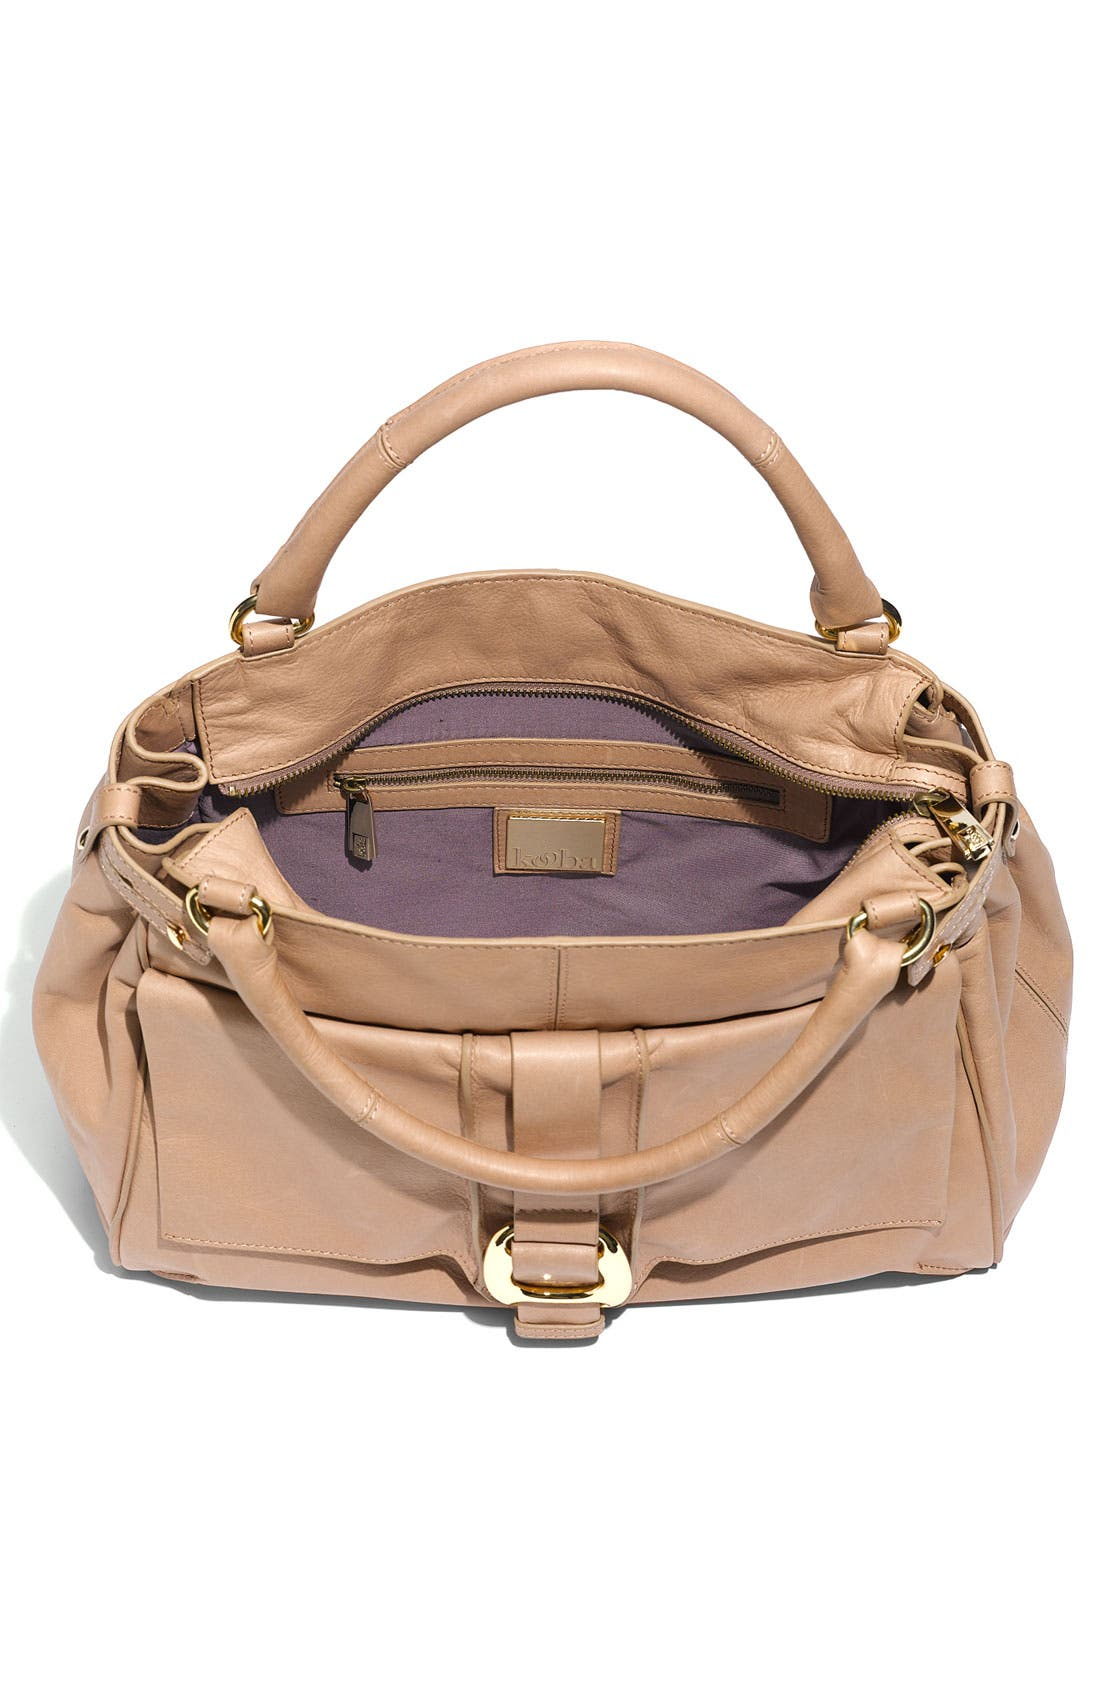 Alternate Image 3  - Kooba 'Anya' Leather Satchel